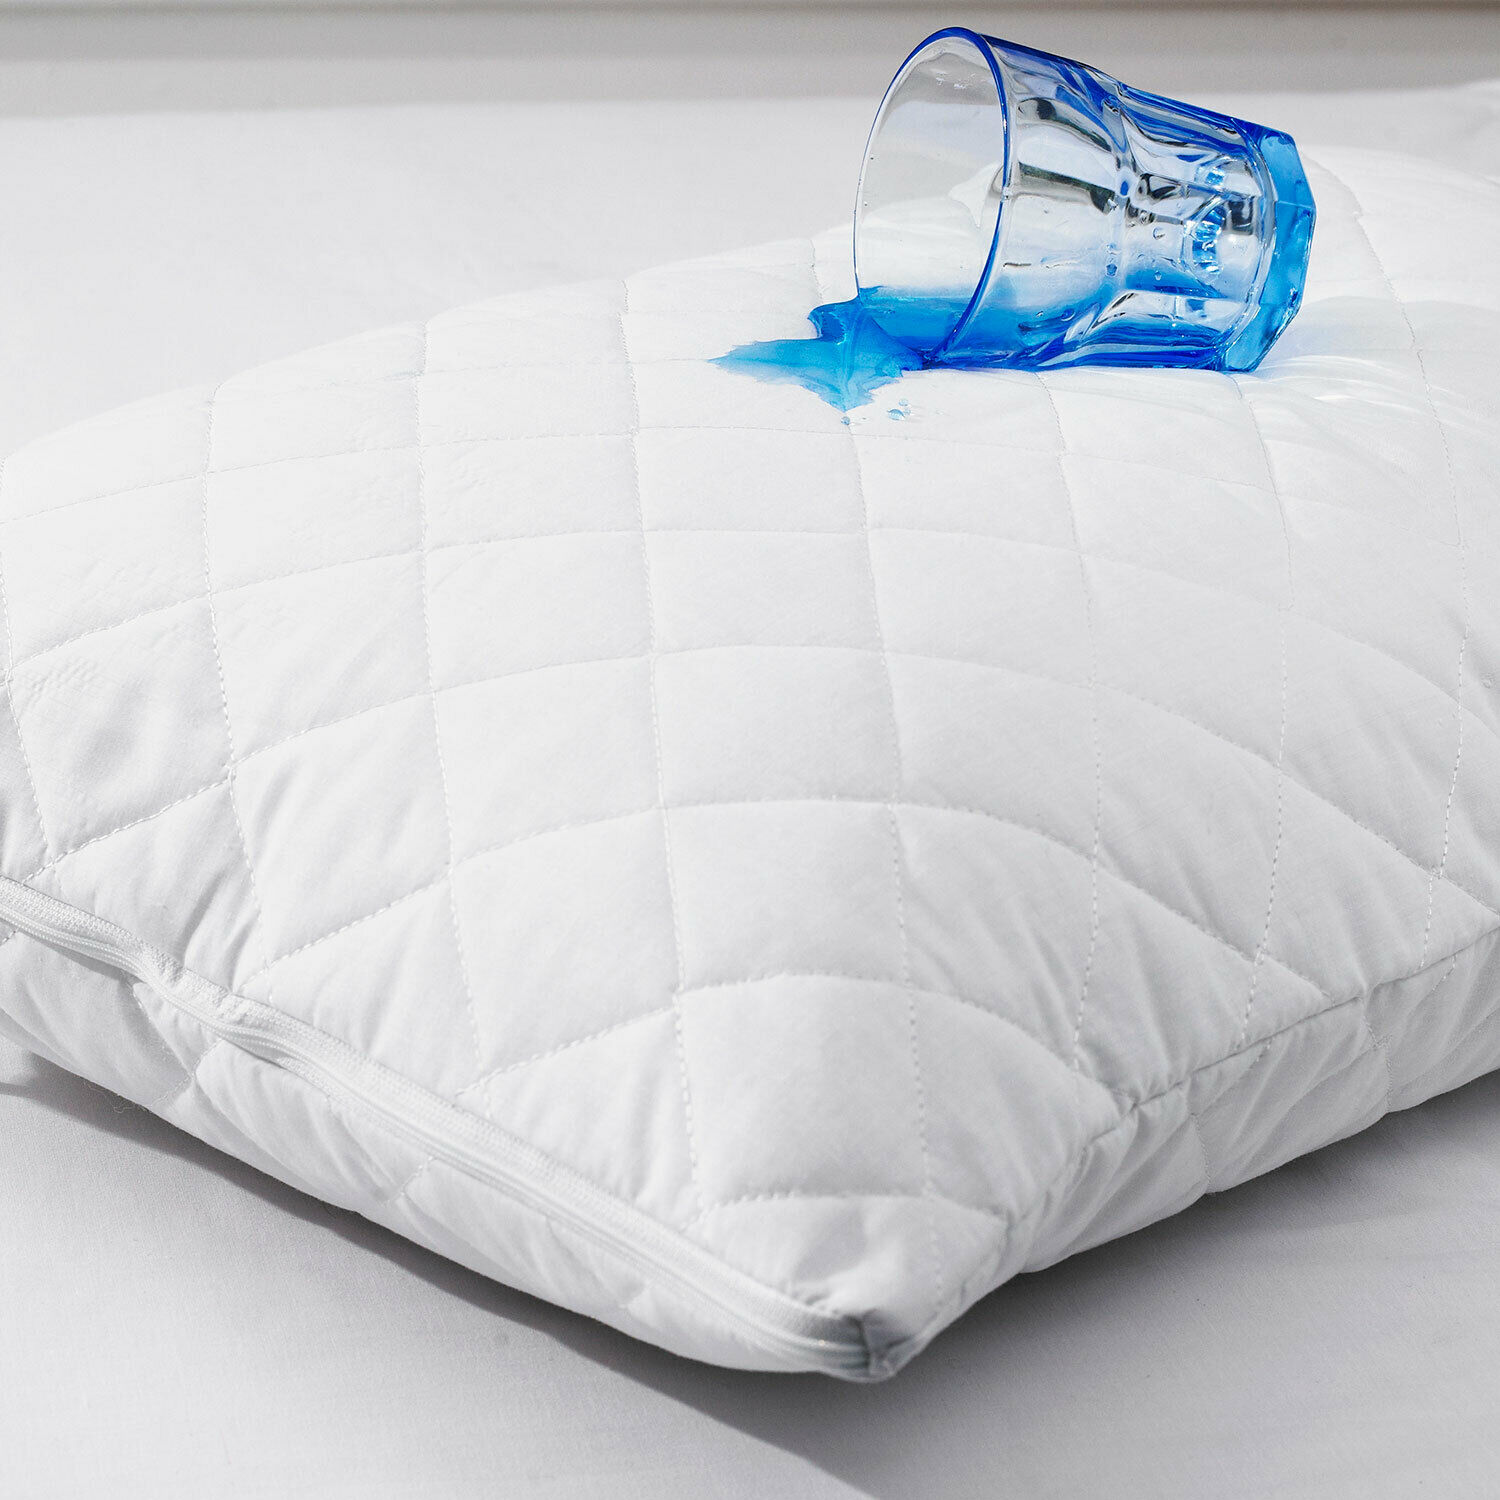 4 Anti Allergy Poly Cotton Quilted Pillow Protector Quilted SALE